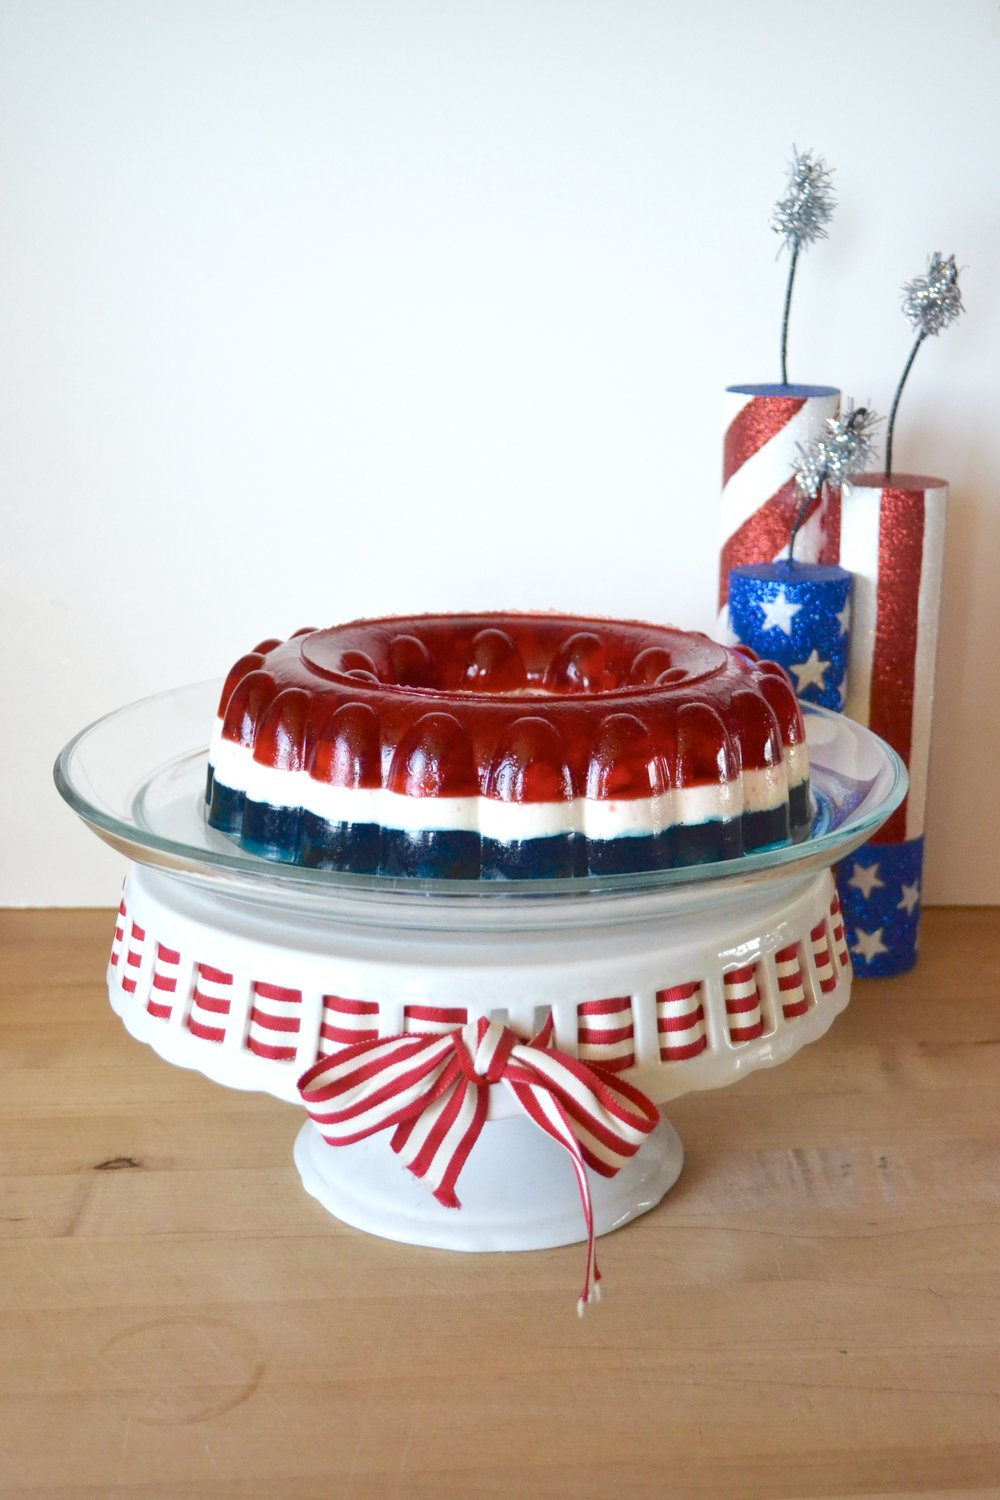 PatrioticJello Salad - Red, white, and blue gelatin layers come together into a perfect salad with the help from a mold.